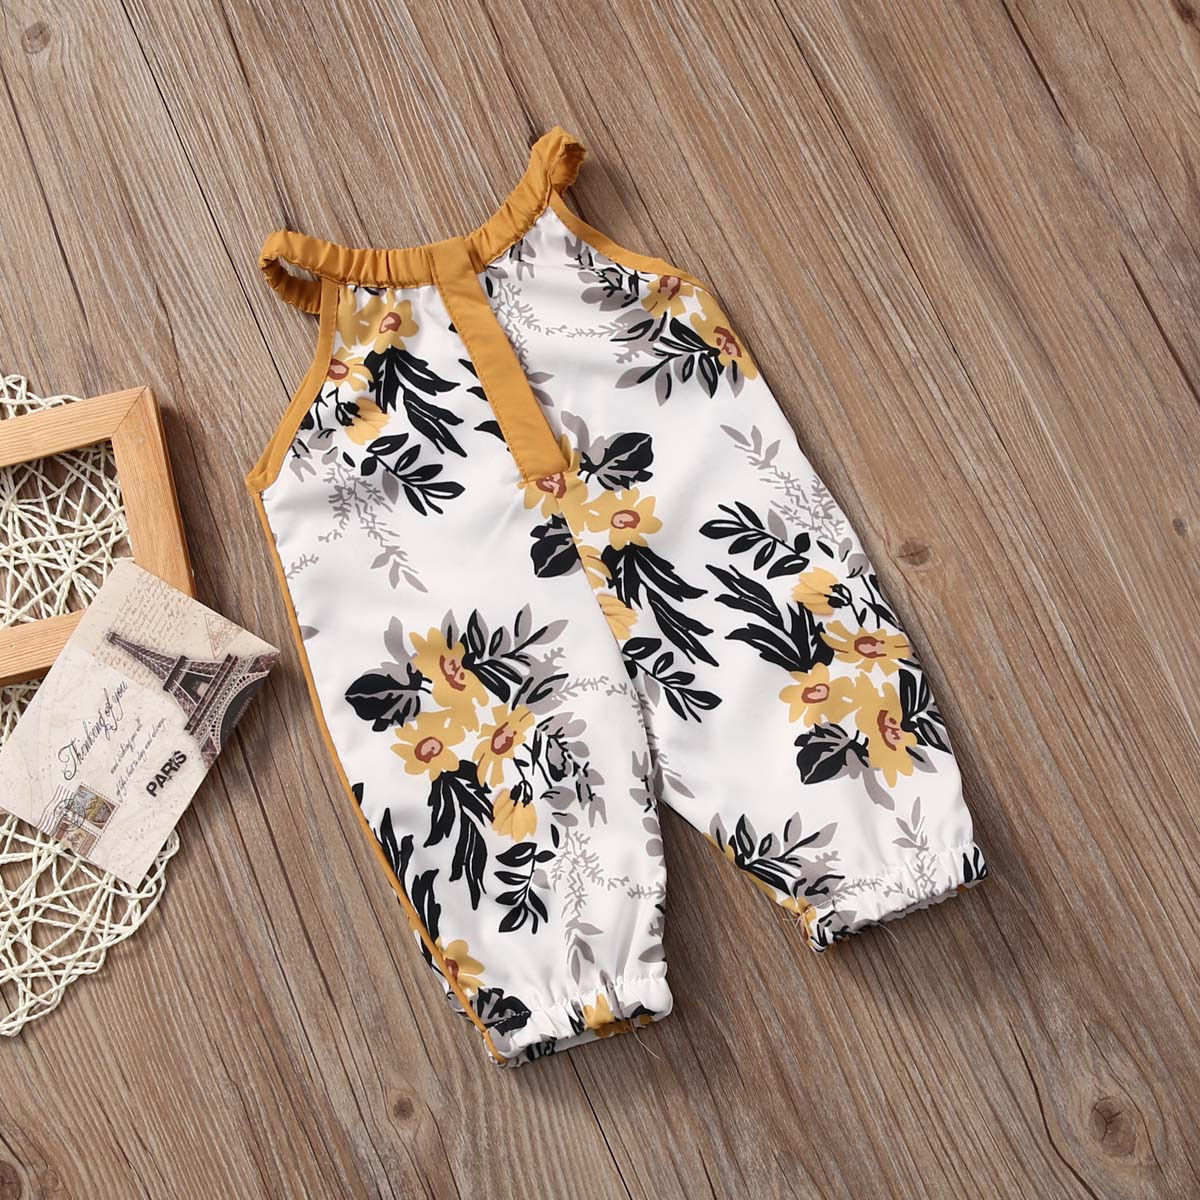 Infant Newborn Baby Girl Boys Clothing Floral Princess Jumpsuit Flower Cotton Baby Romper Clothes Set